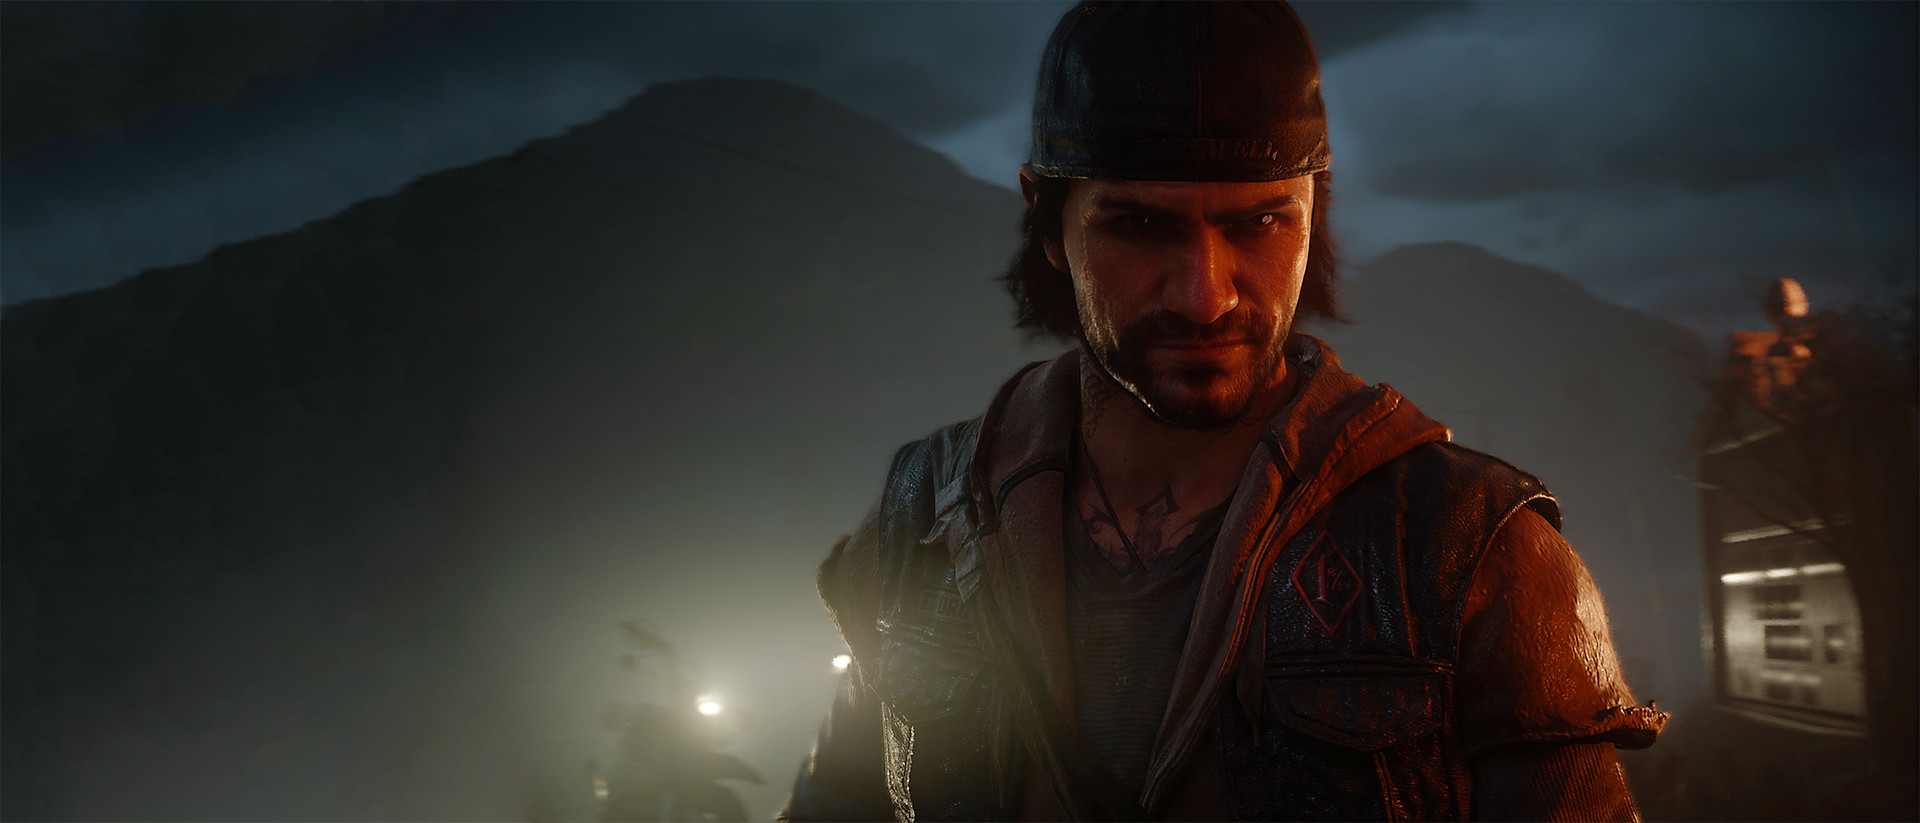 Deacon St. John character image - Days Gone